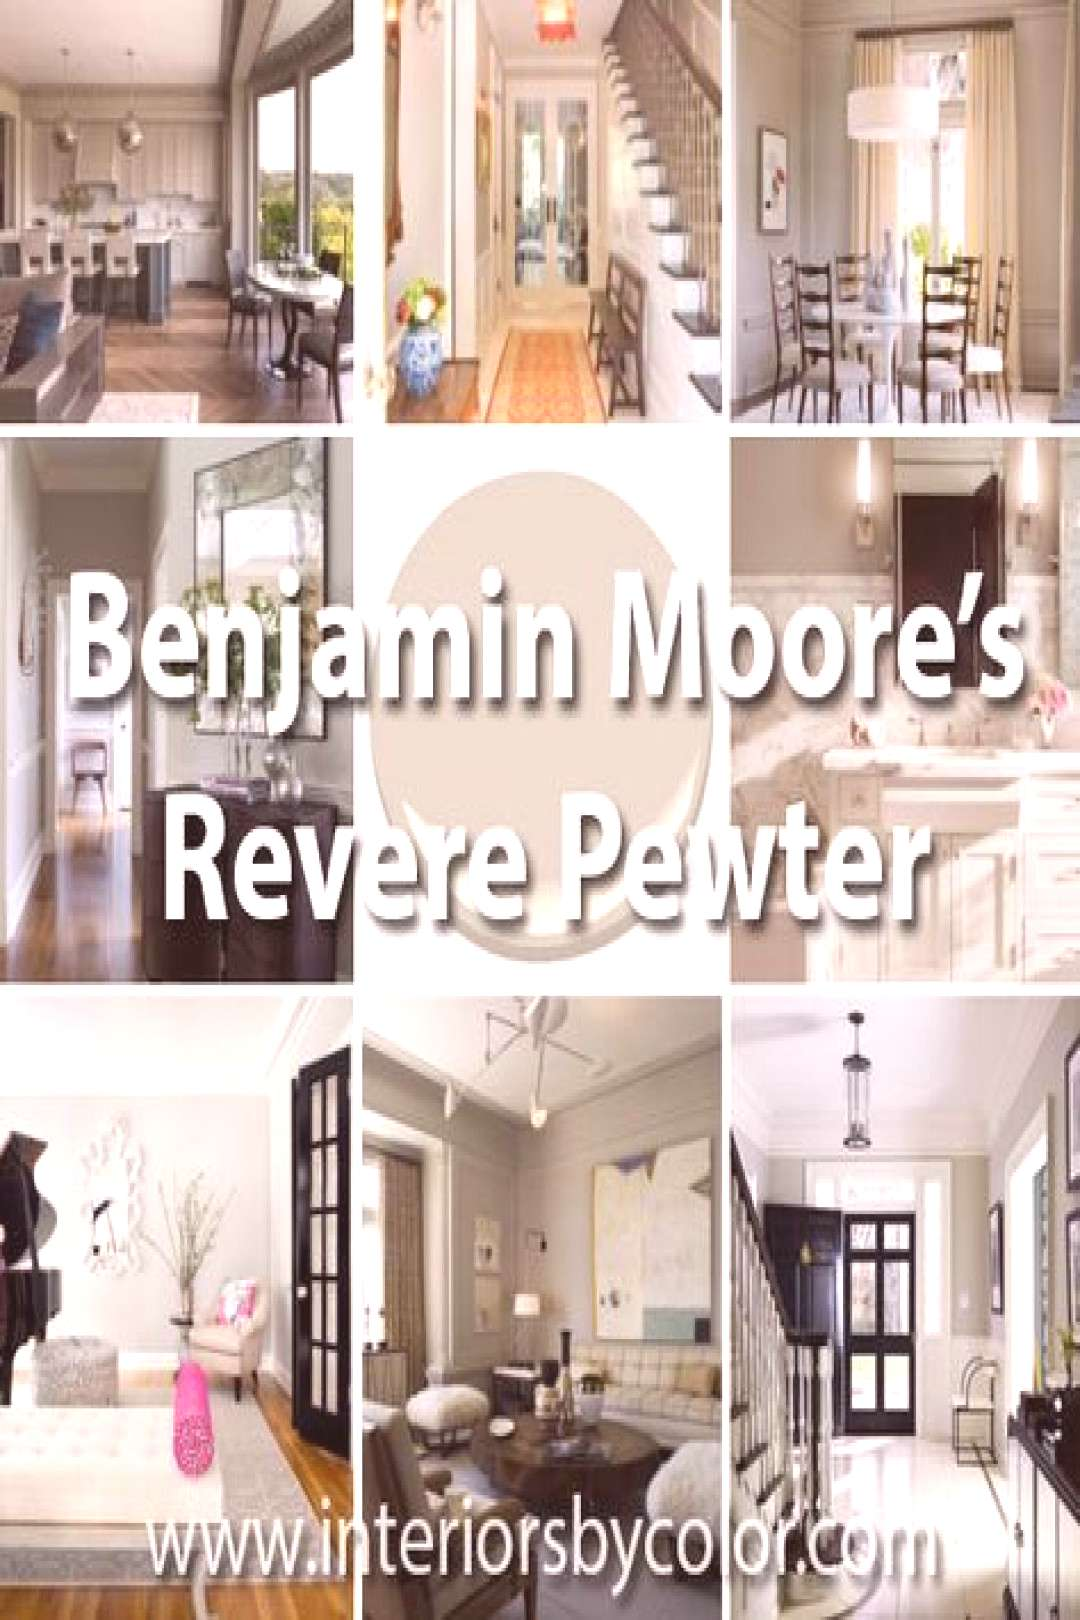 One of the most popular gray paint colors world wide;Benjamin Moore Revere Pewter is described by